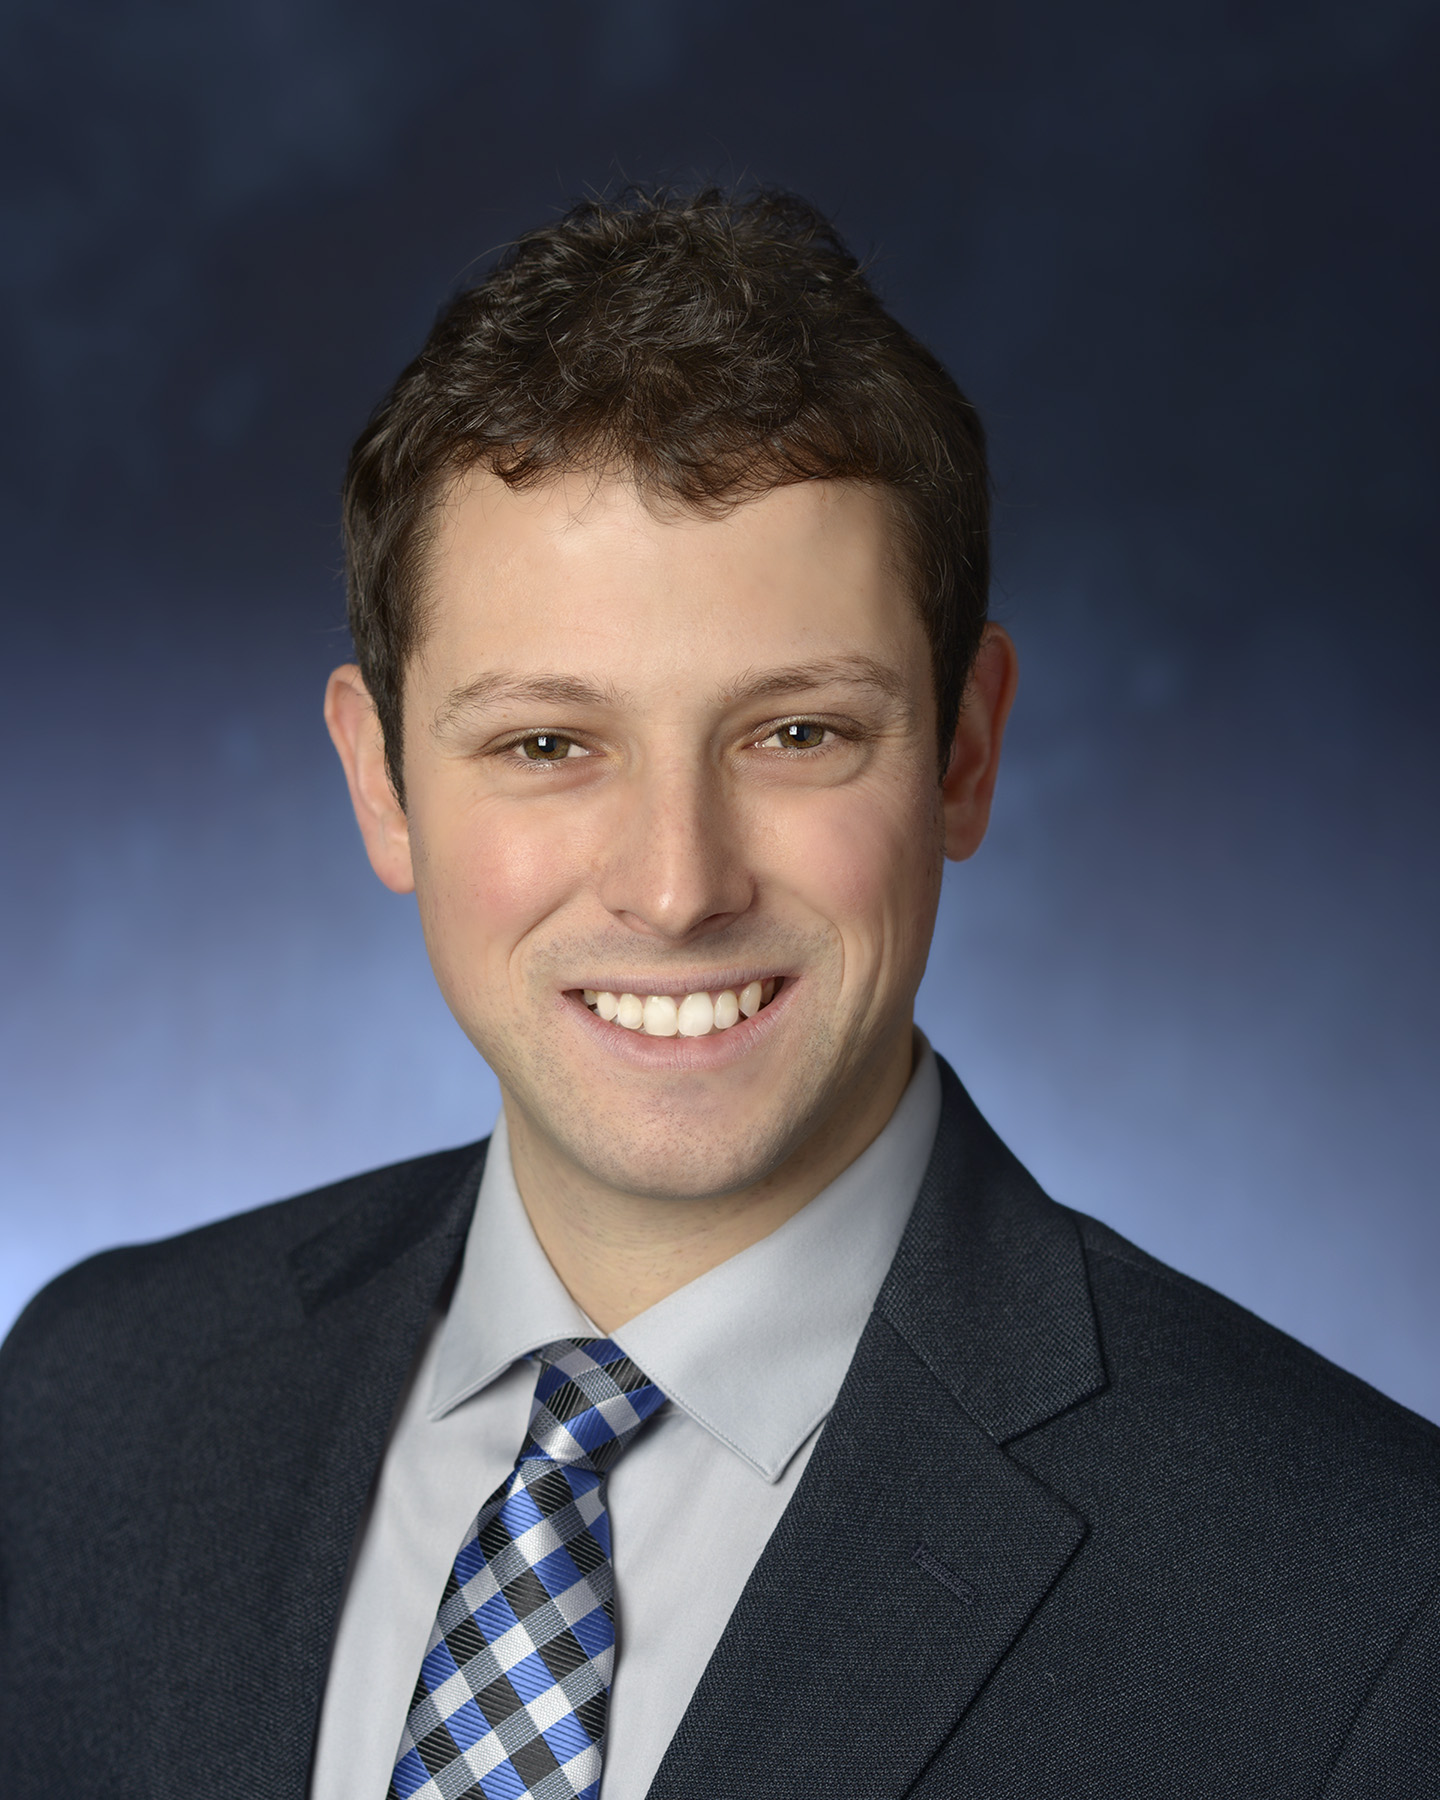 Reuben D. Holober website